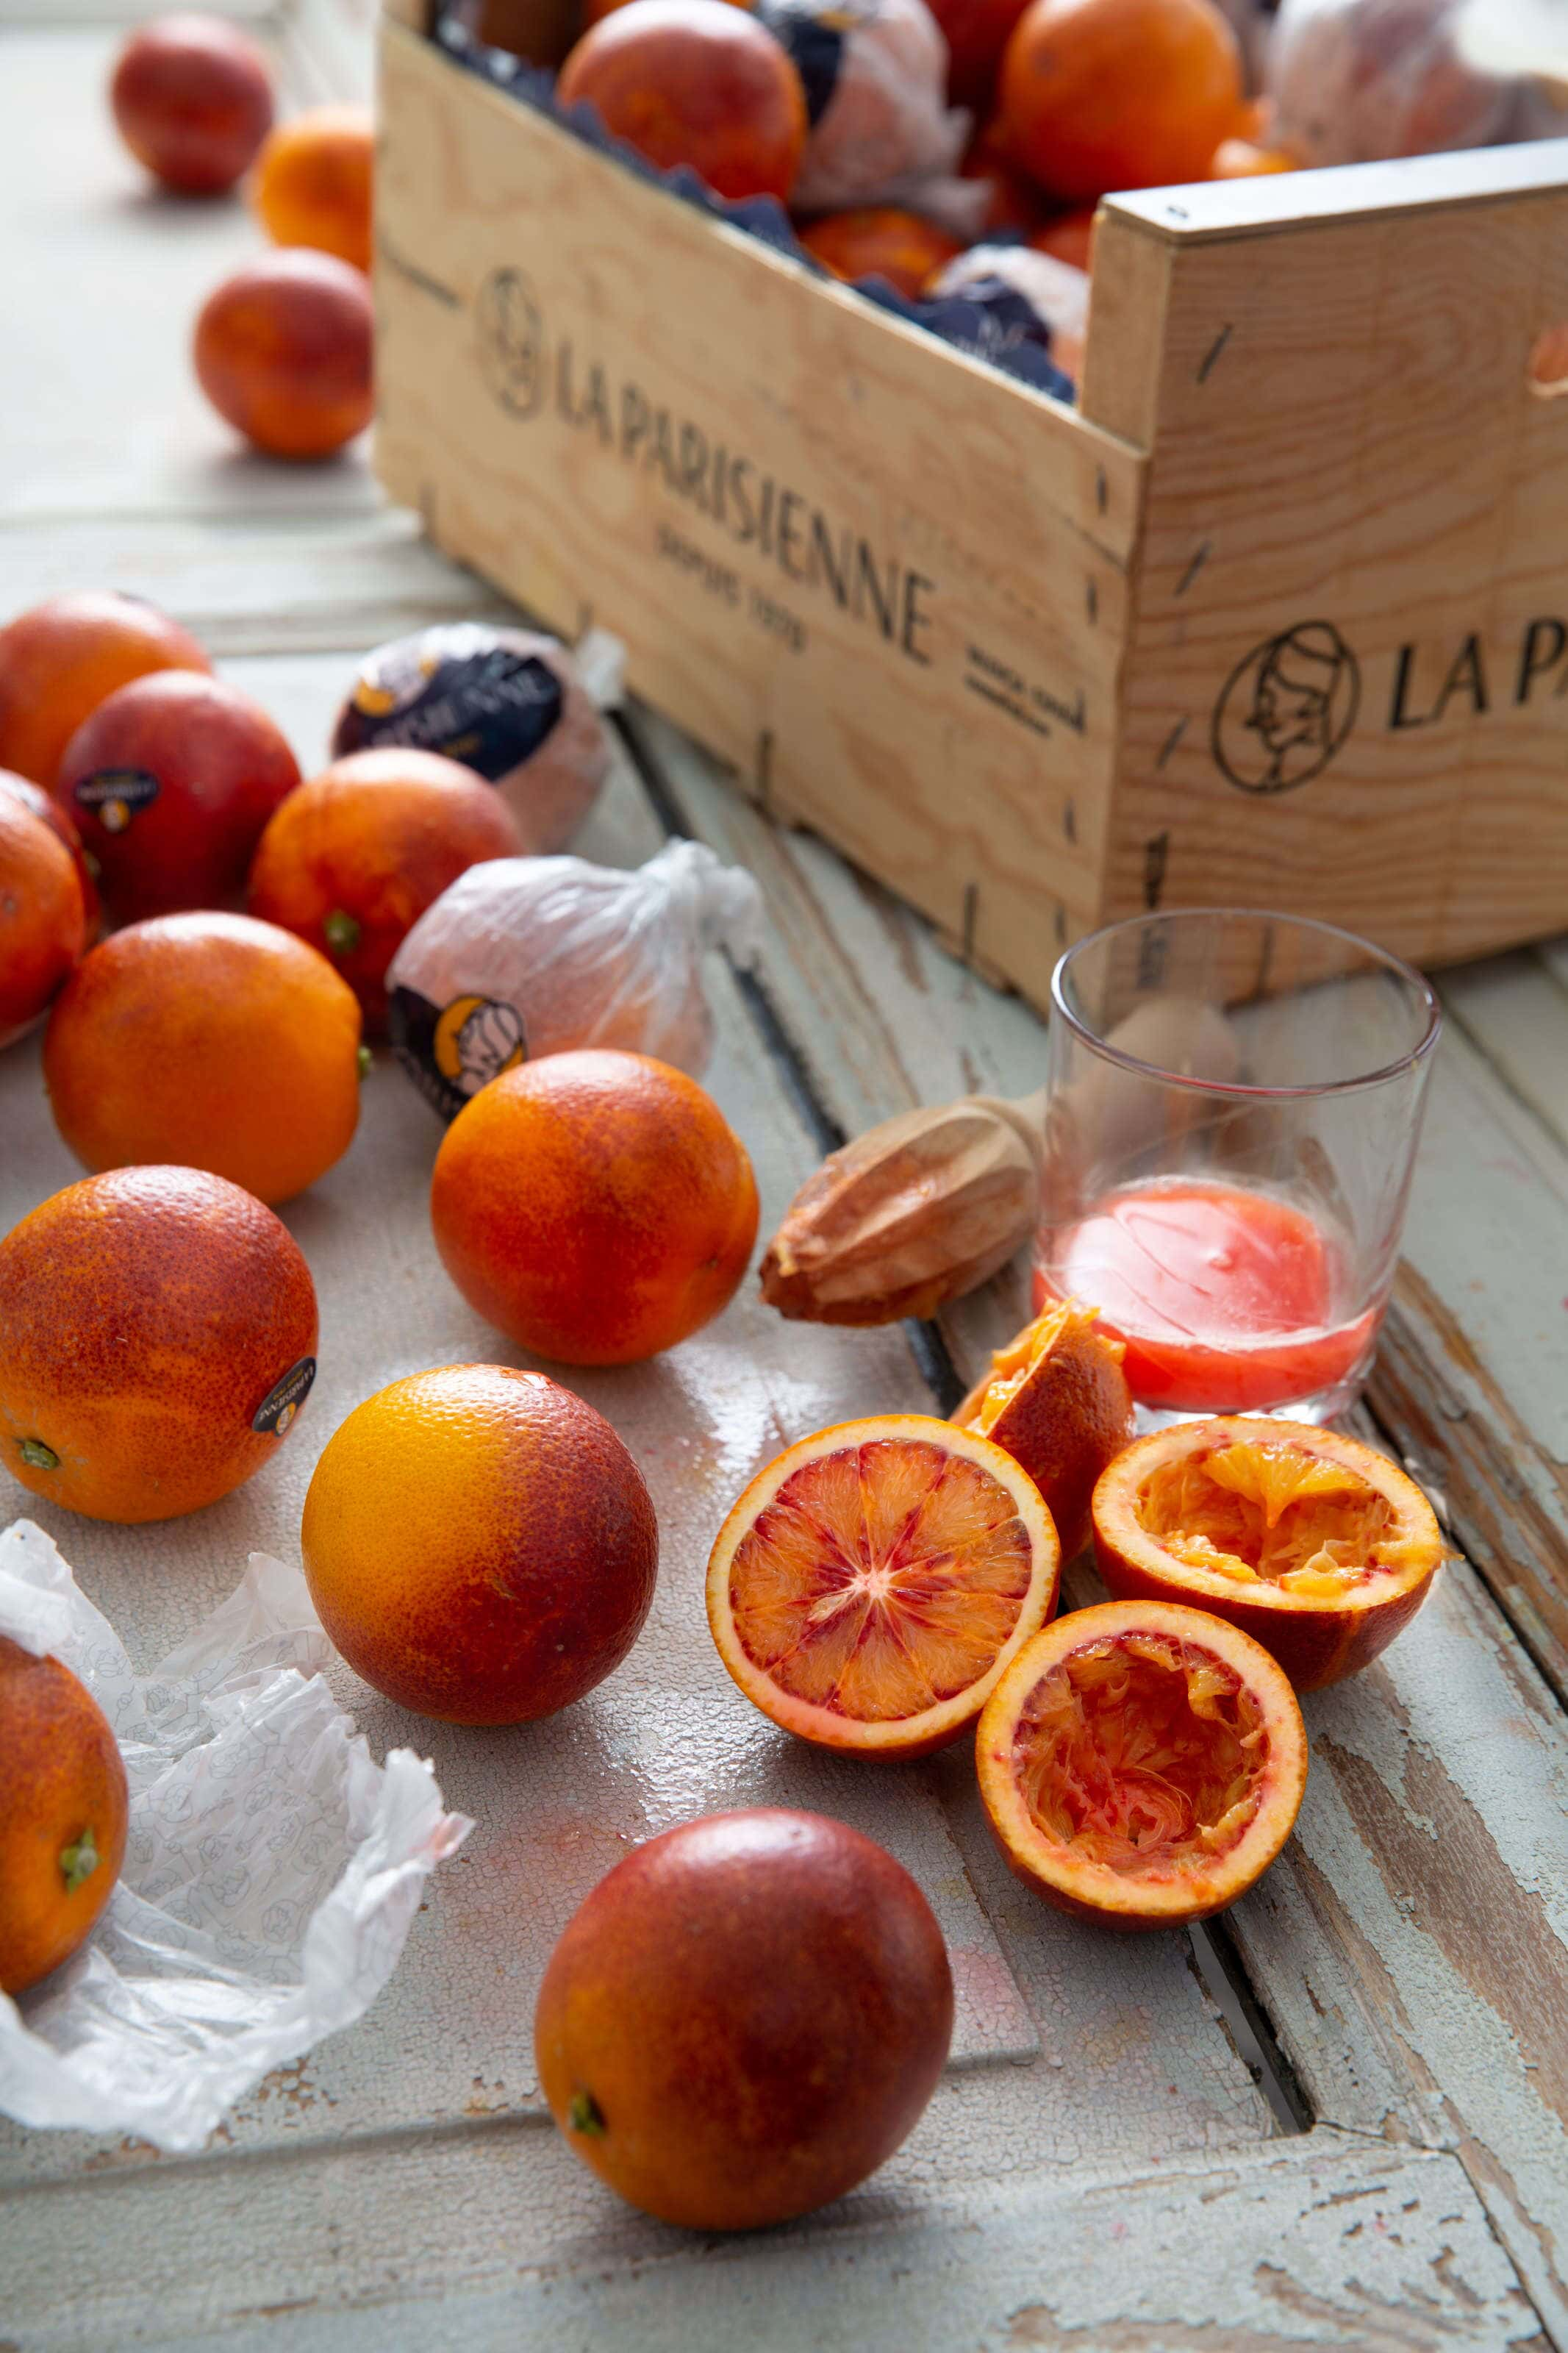 Blood oranges, whole, halved and juiced.